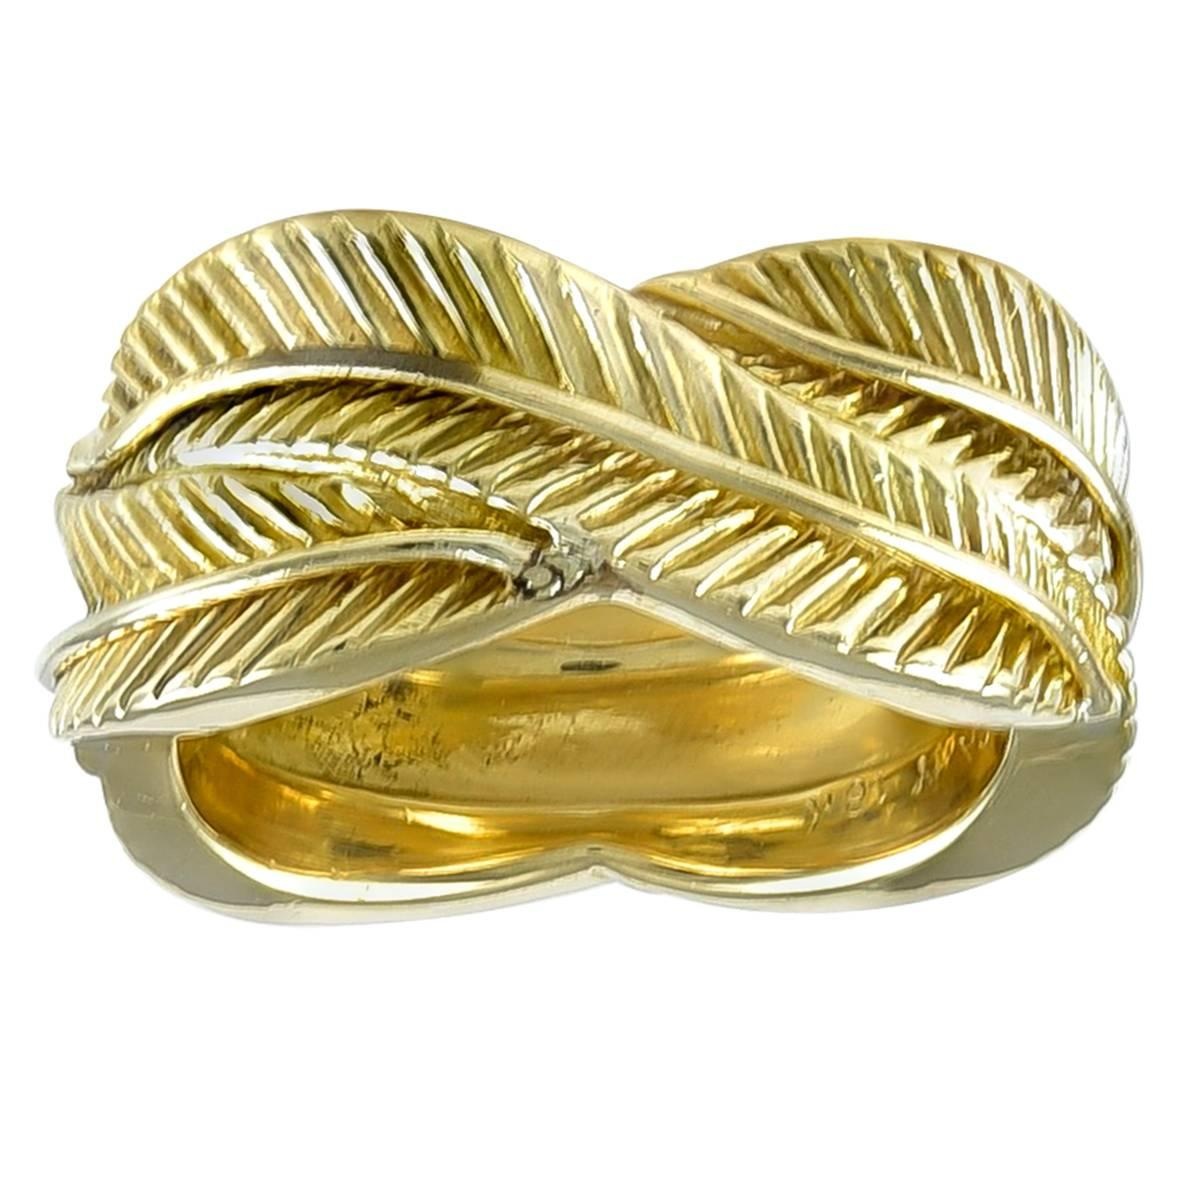 Van Cleef & Arpels Wide Gold Eternity Band Ring